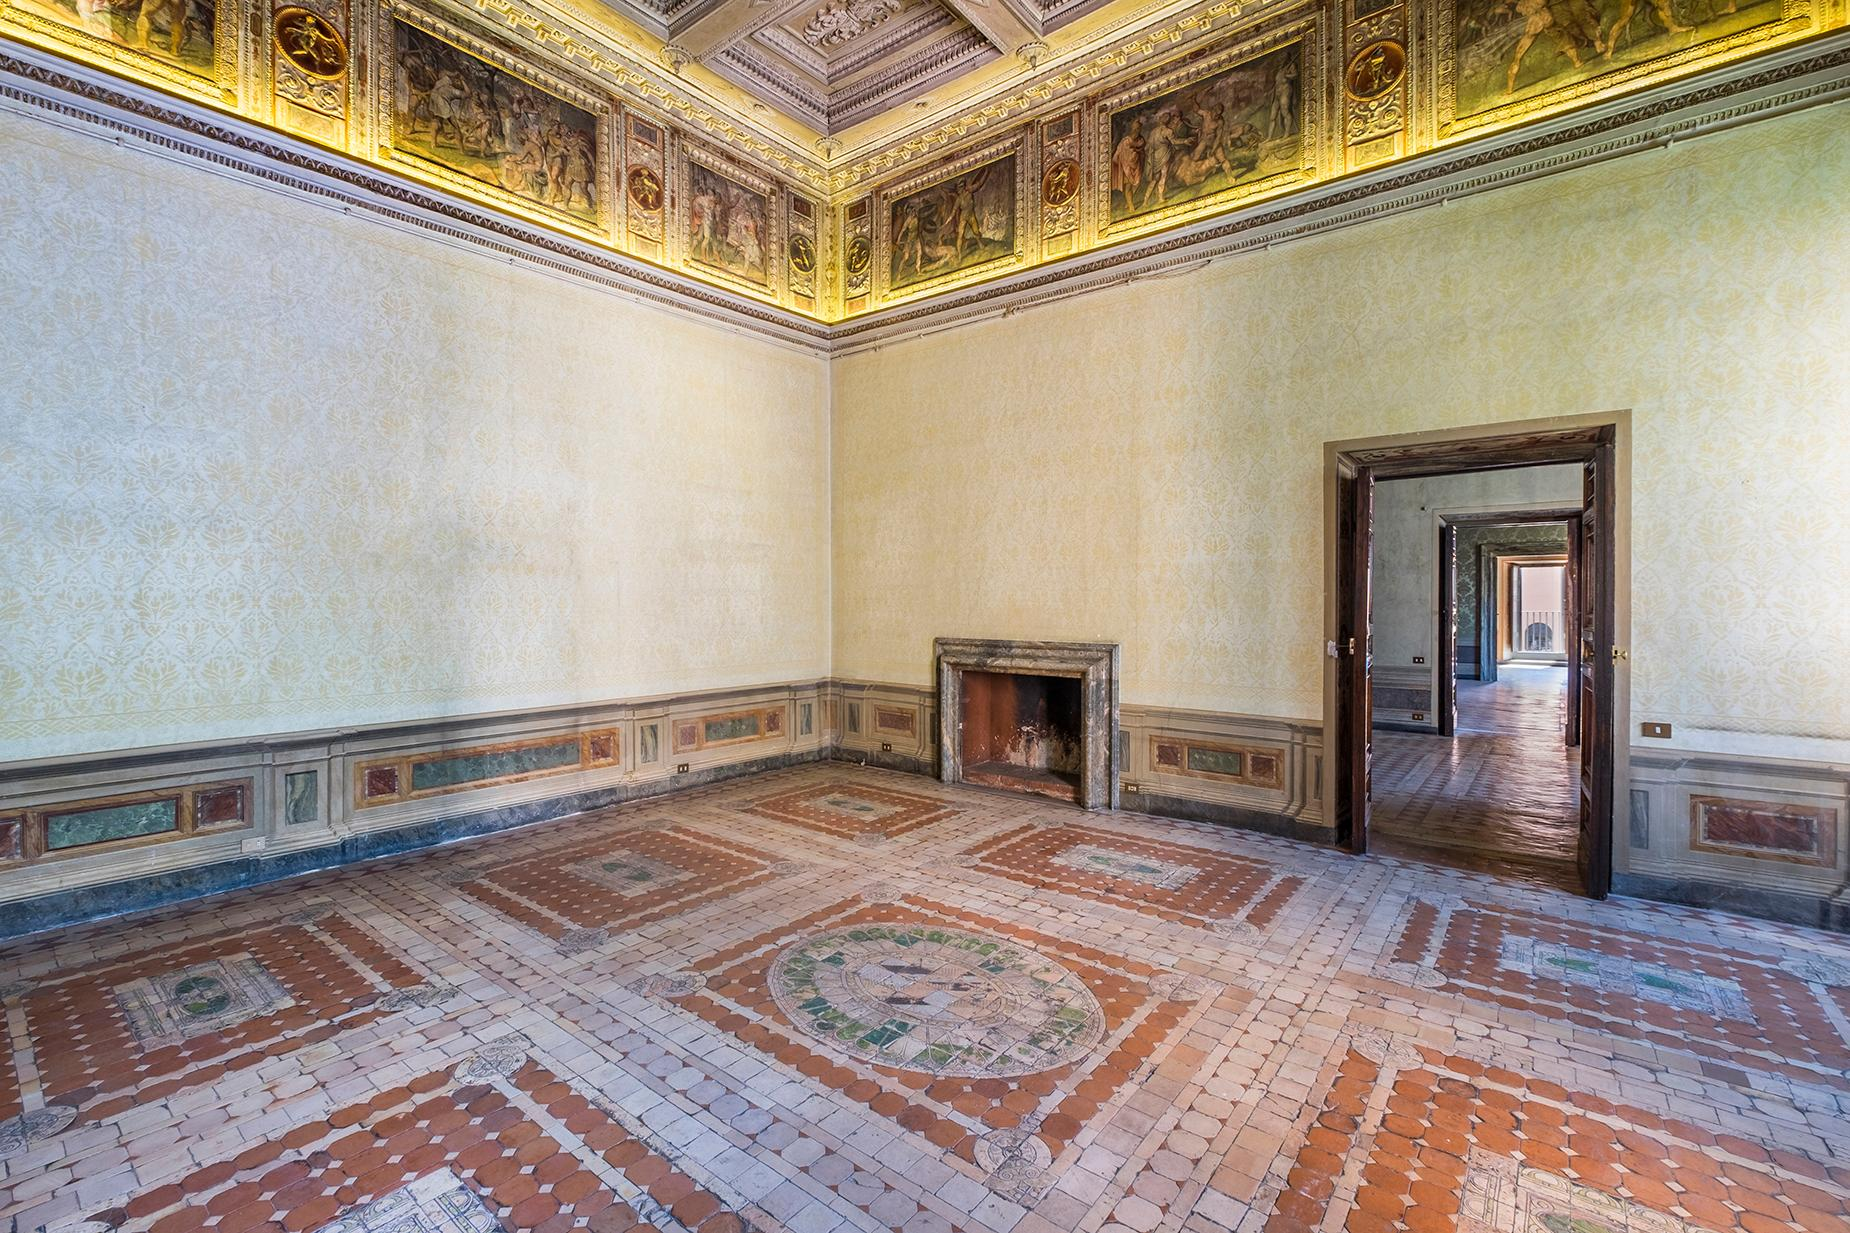 Palazzo Sacchetti, a pearl of the late reinassance in the heart of Rome - 27